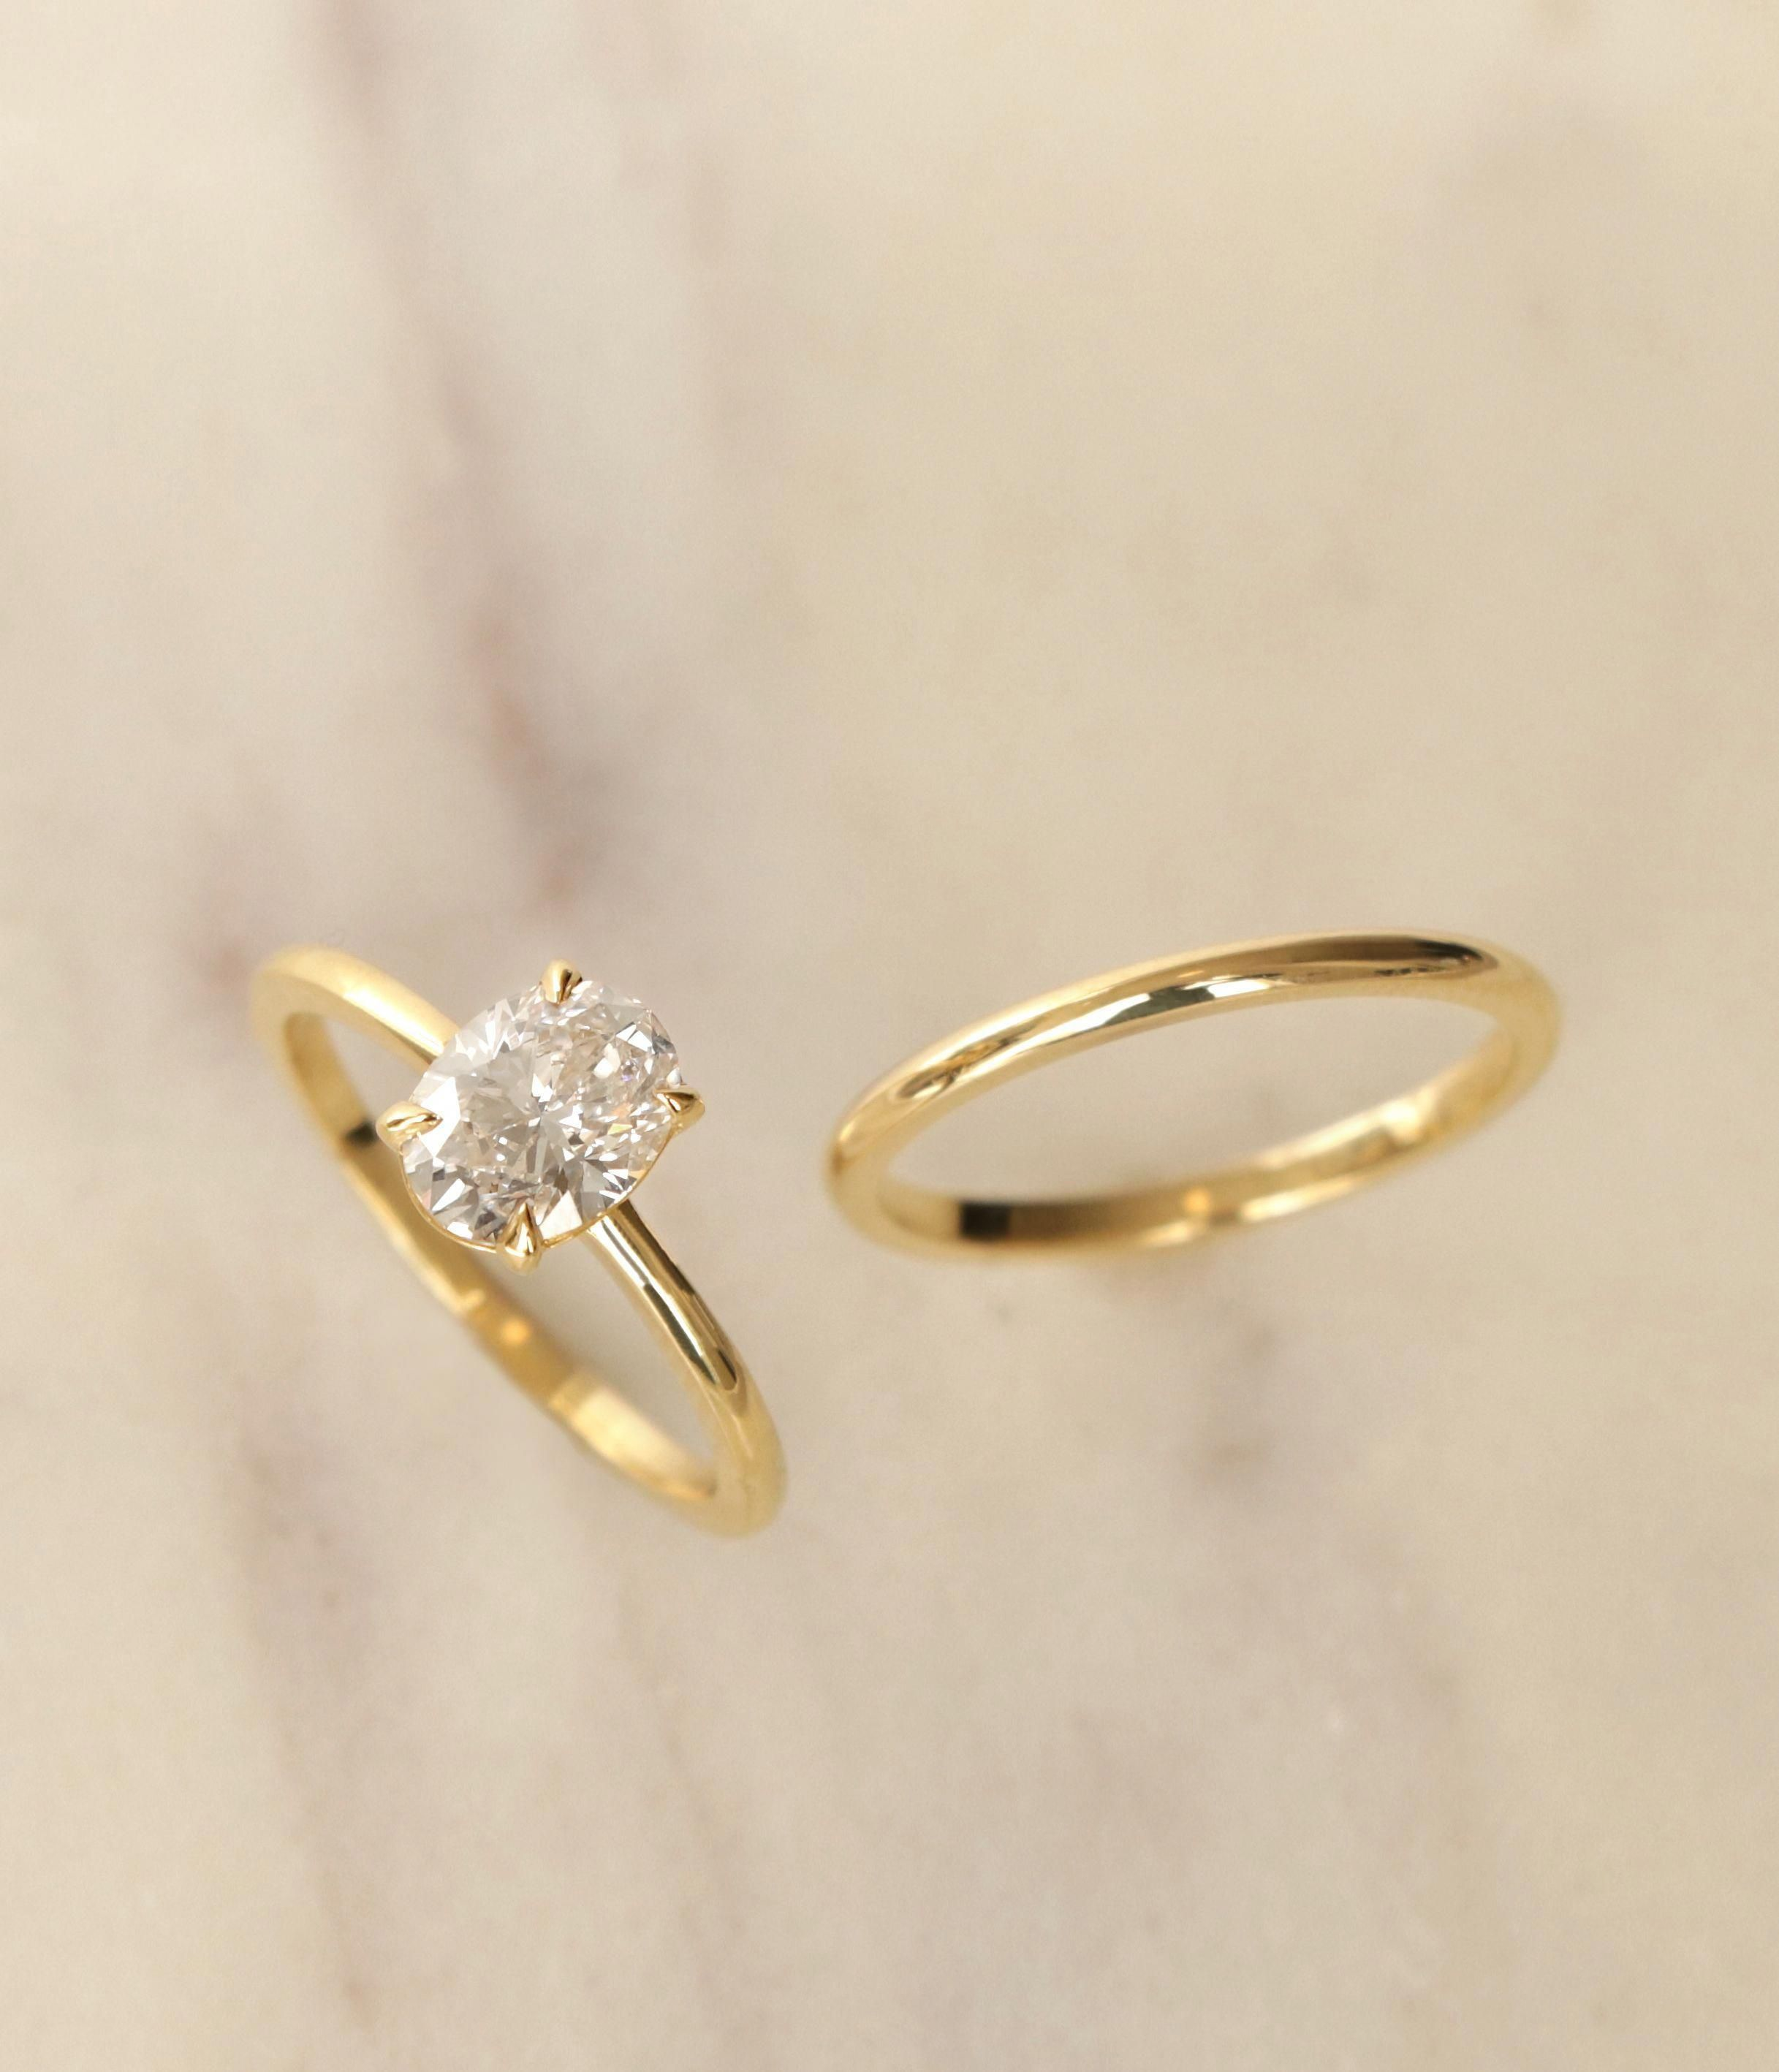 VOW Vrai u Oro Wedding uModern Oval Engagement Ring available in